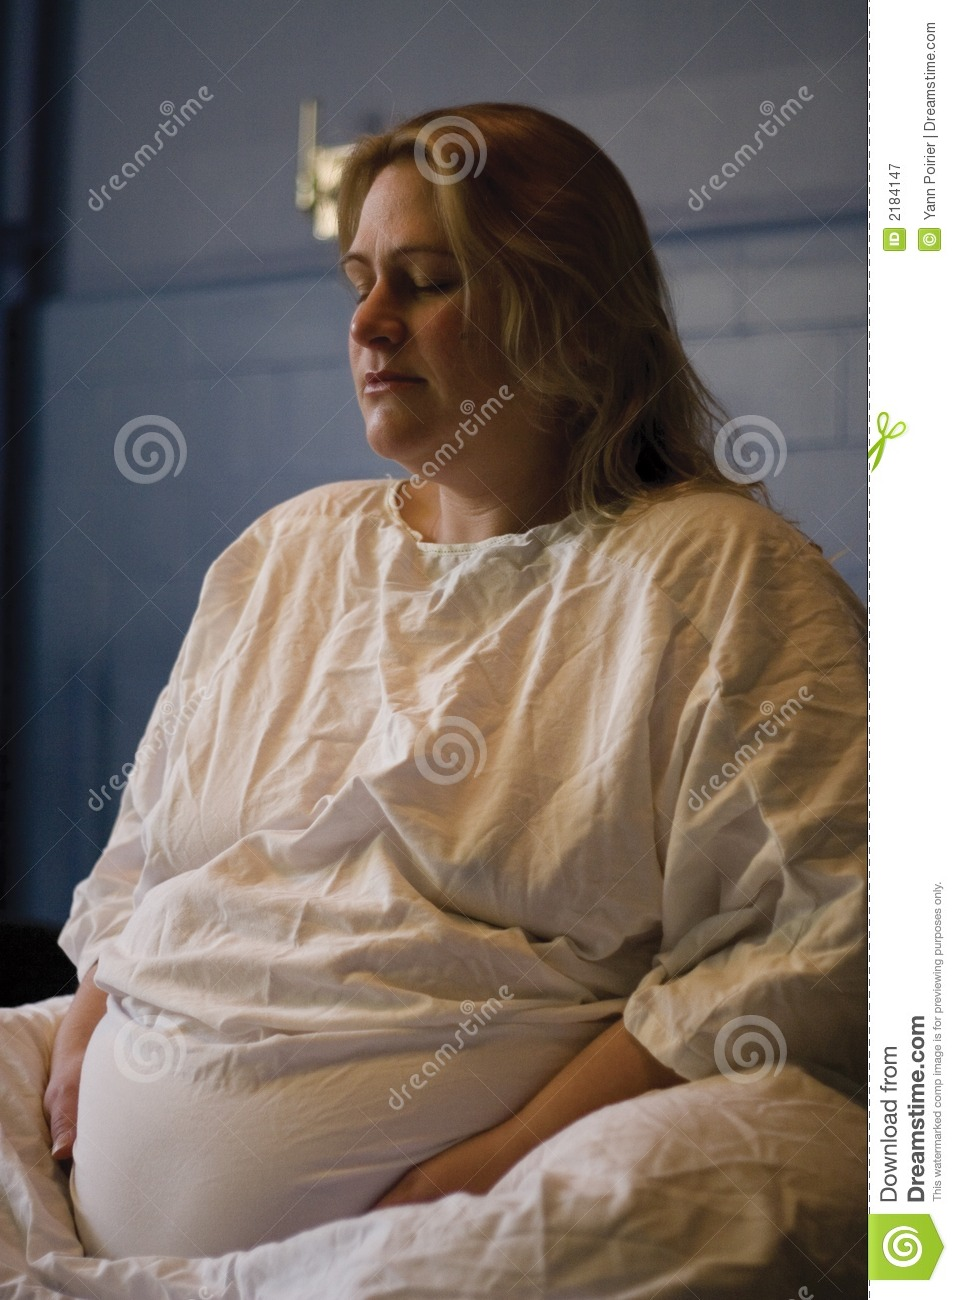 Royalty Free Stock Photography: Pregnant woman giving birth